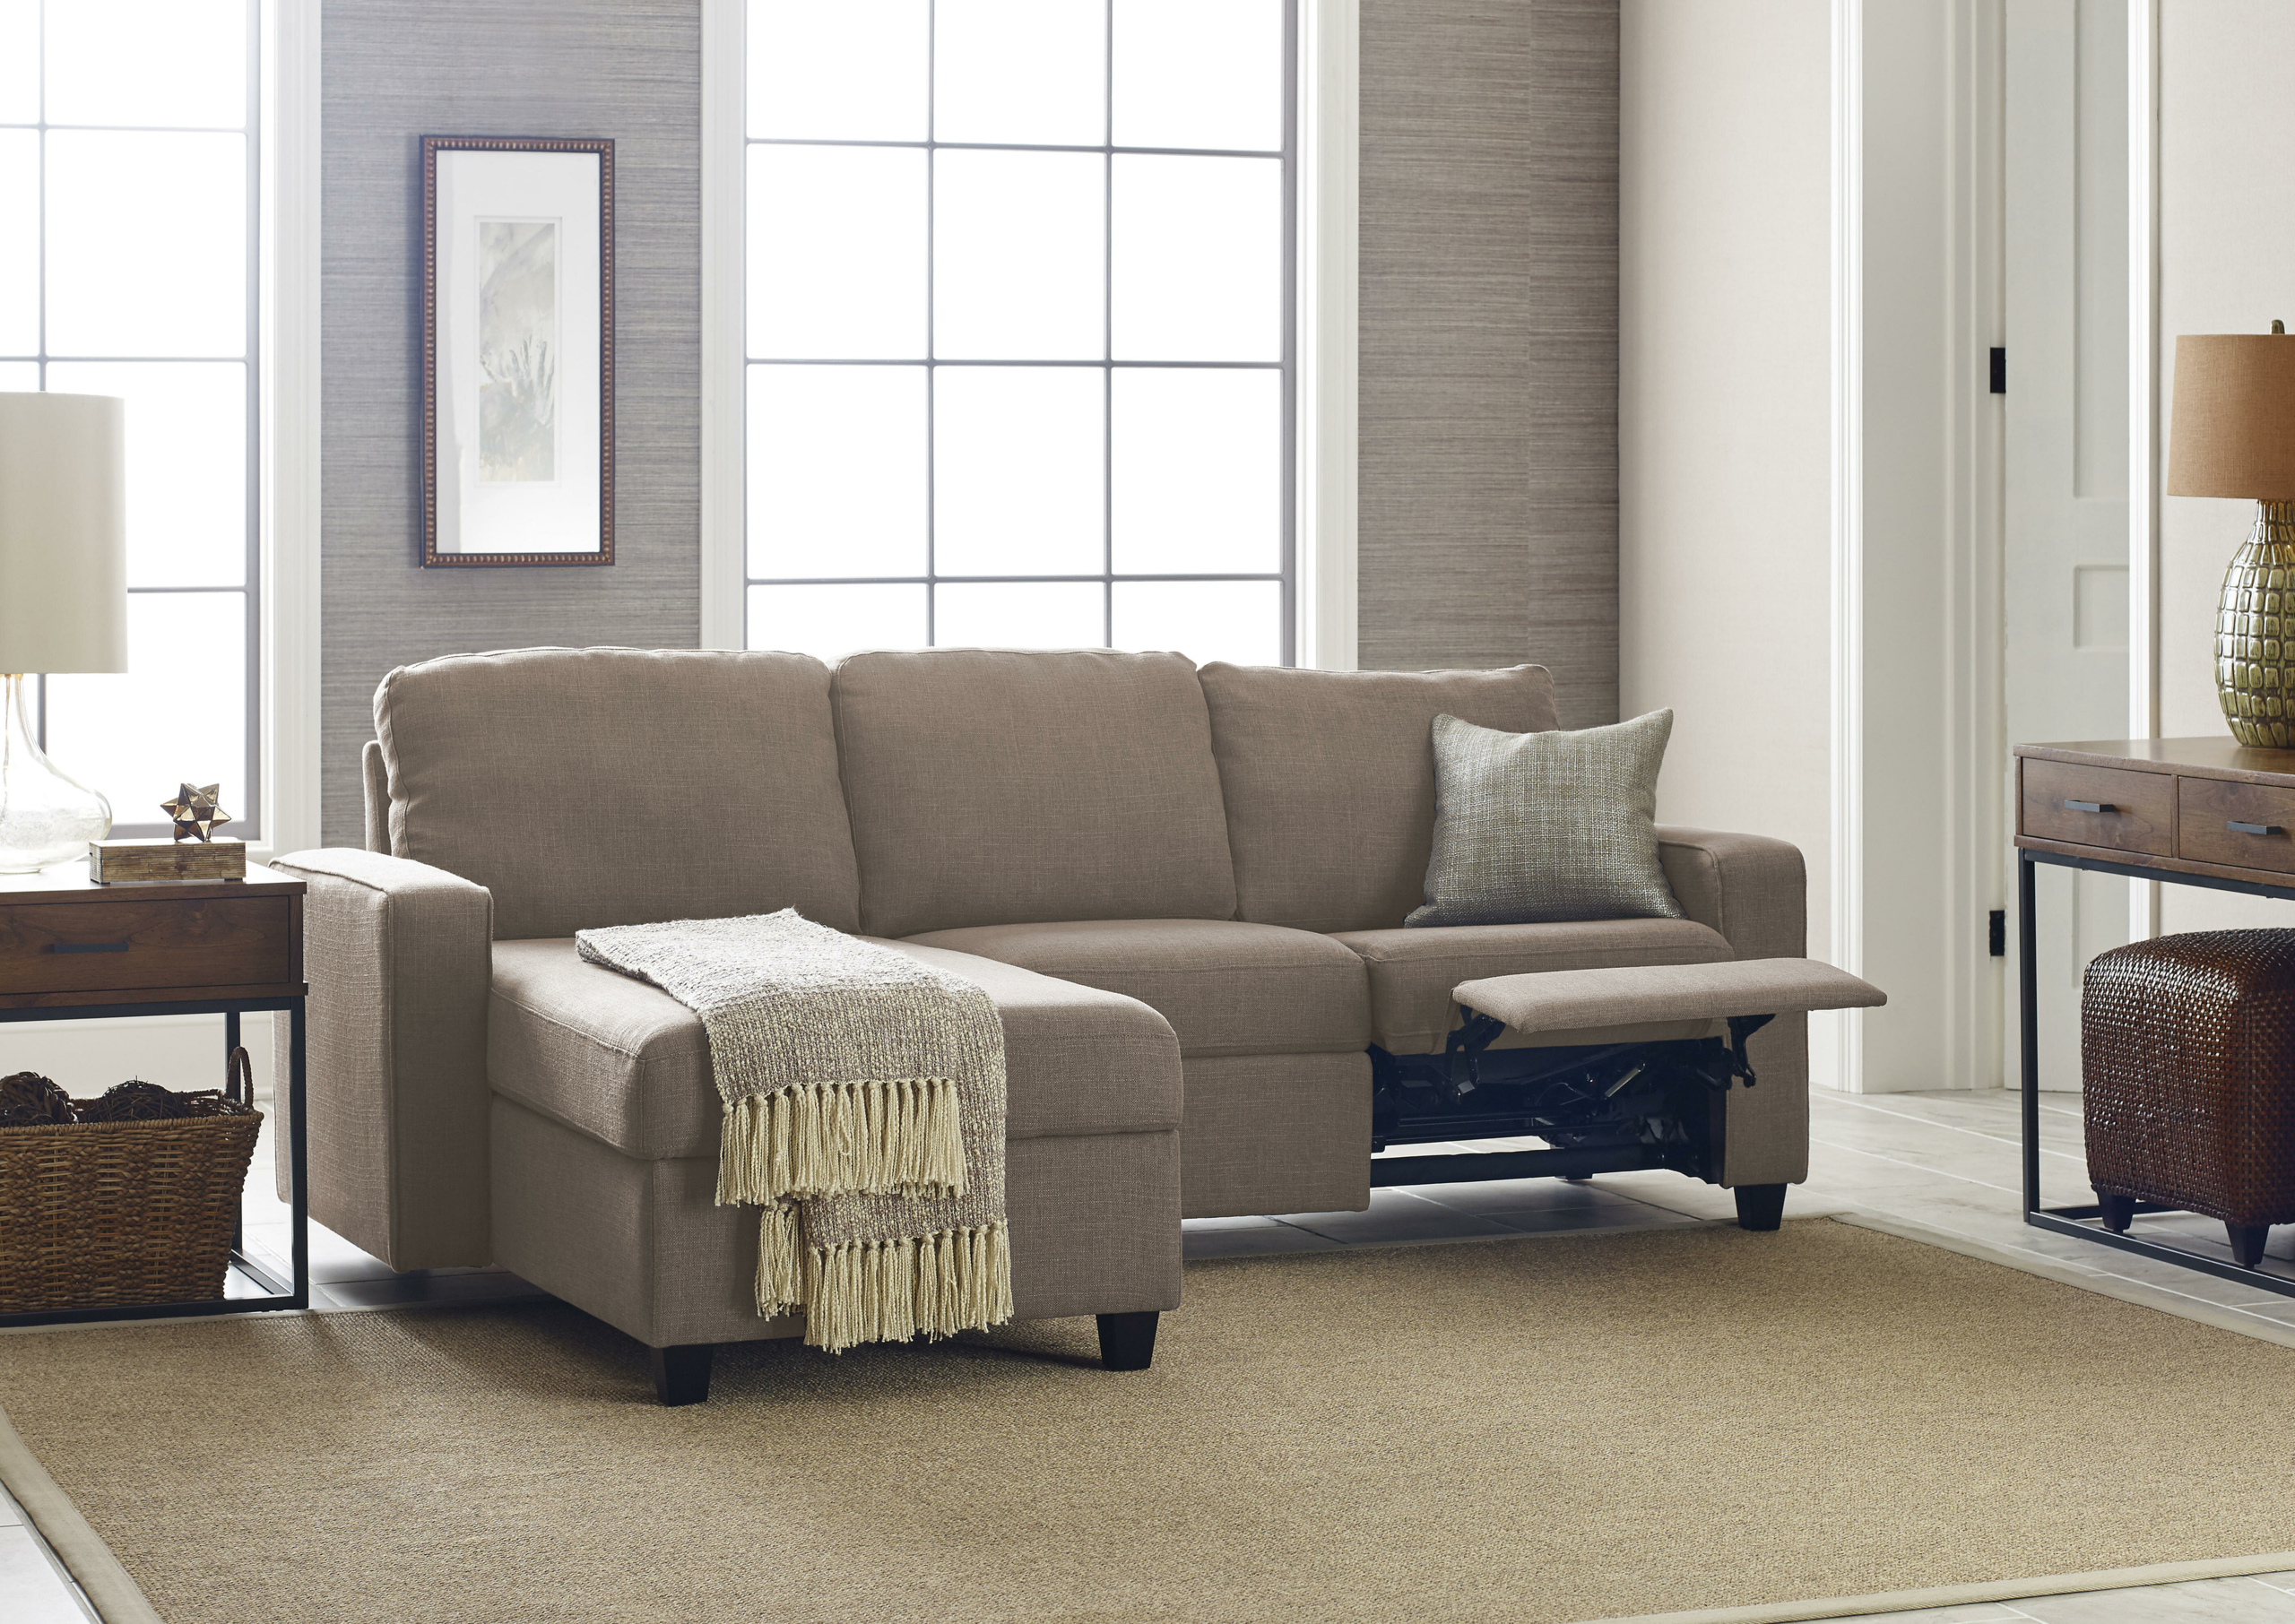 Small Sectional Sofa With Recliner You Ll Love In 2020 Visualhunt